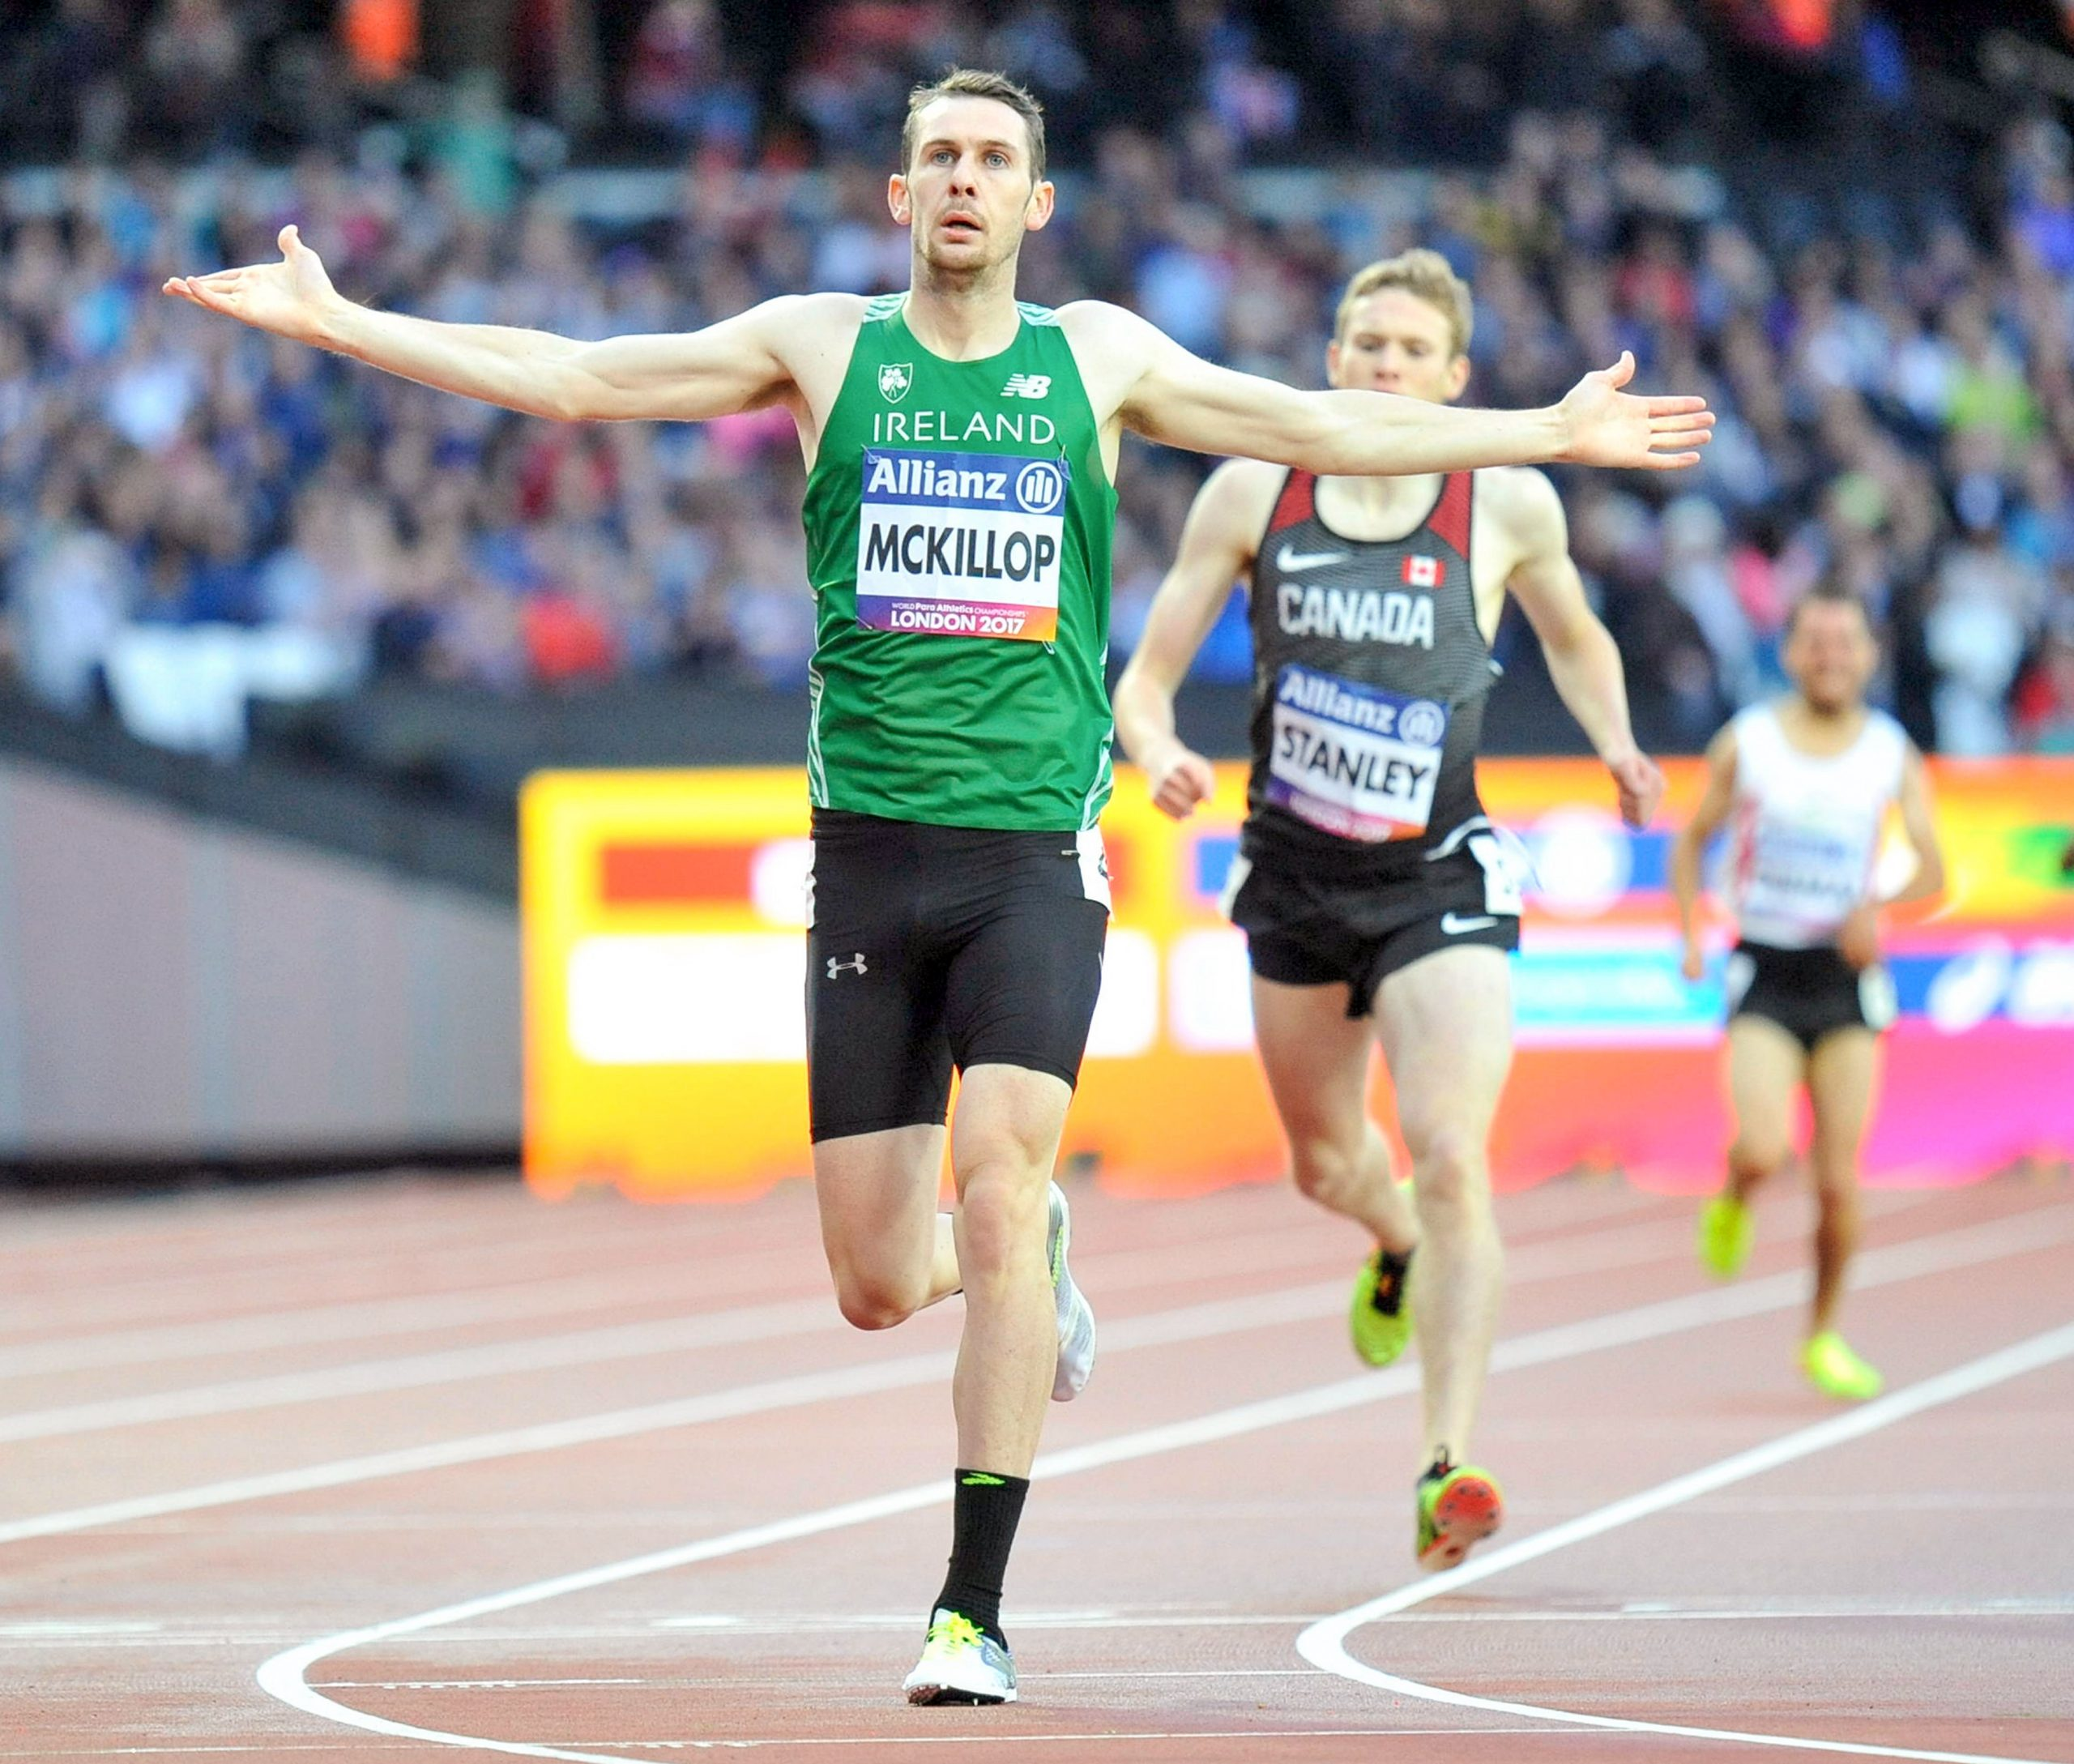 22 July 2017; Michael McKillop of Ireland after winning the Men's 1500m, T37, Final during the 2017 Para Athletics World Championships at the Olympic Stadium in London. Photo by Luc Percival/Sportsfile *** NO REPRODUCTION FEE ***